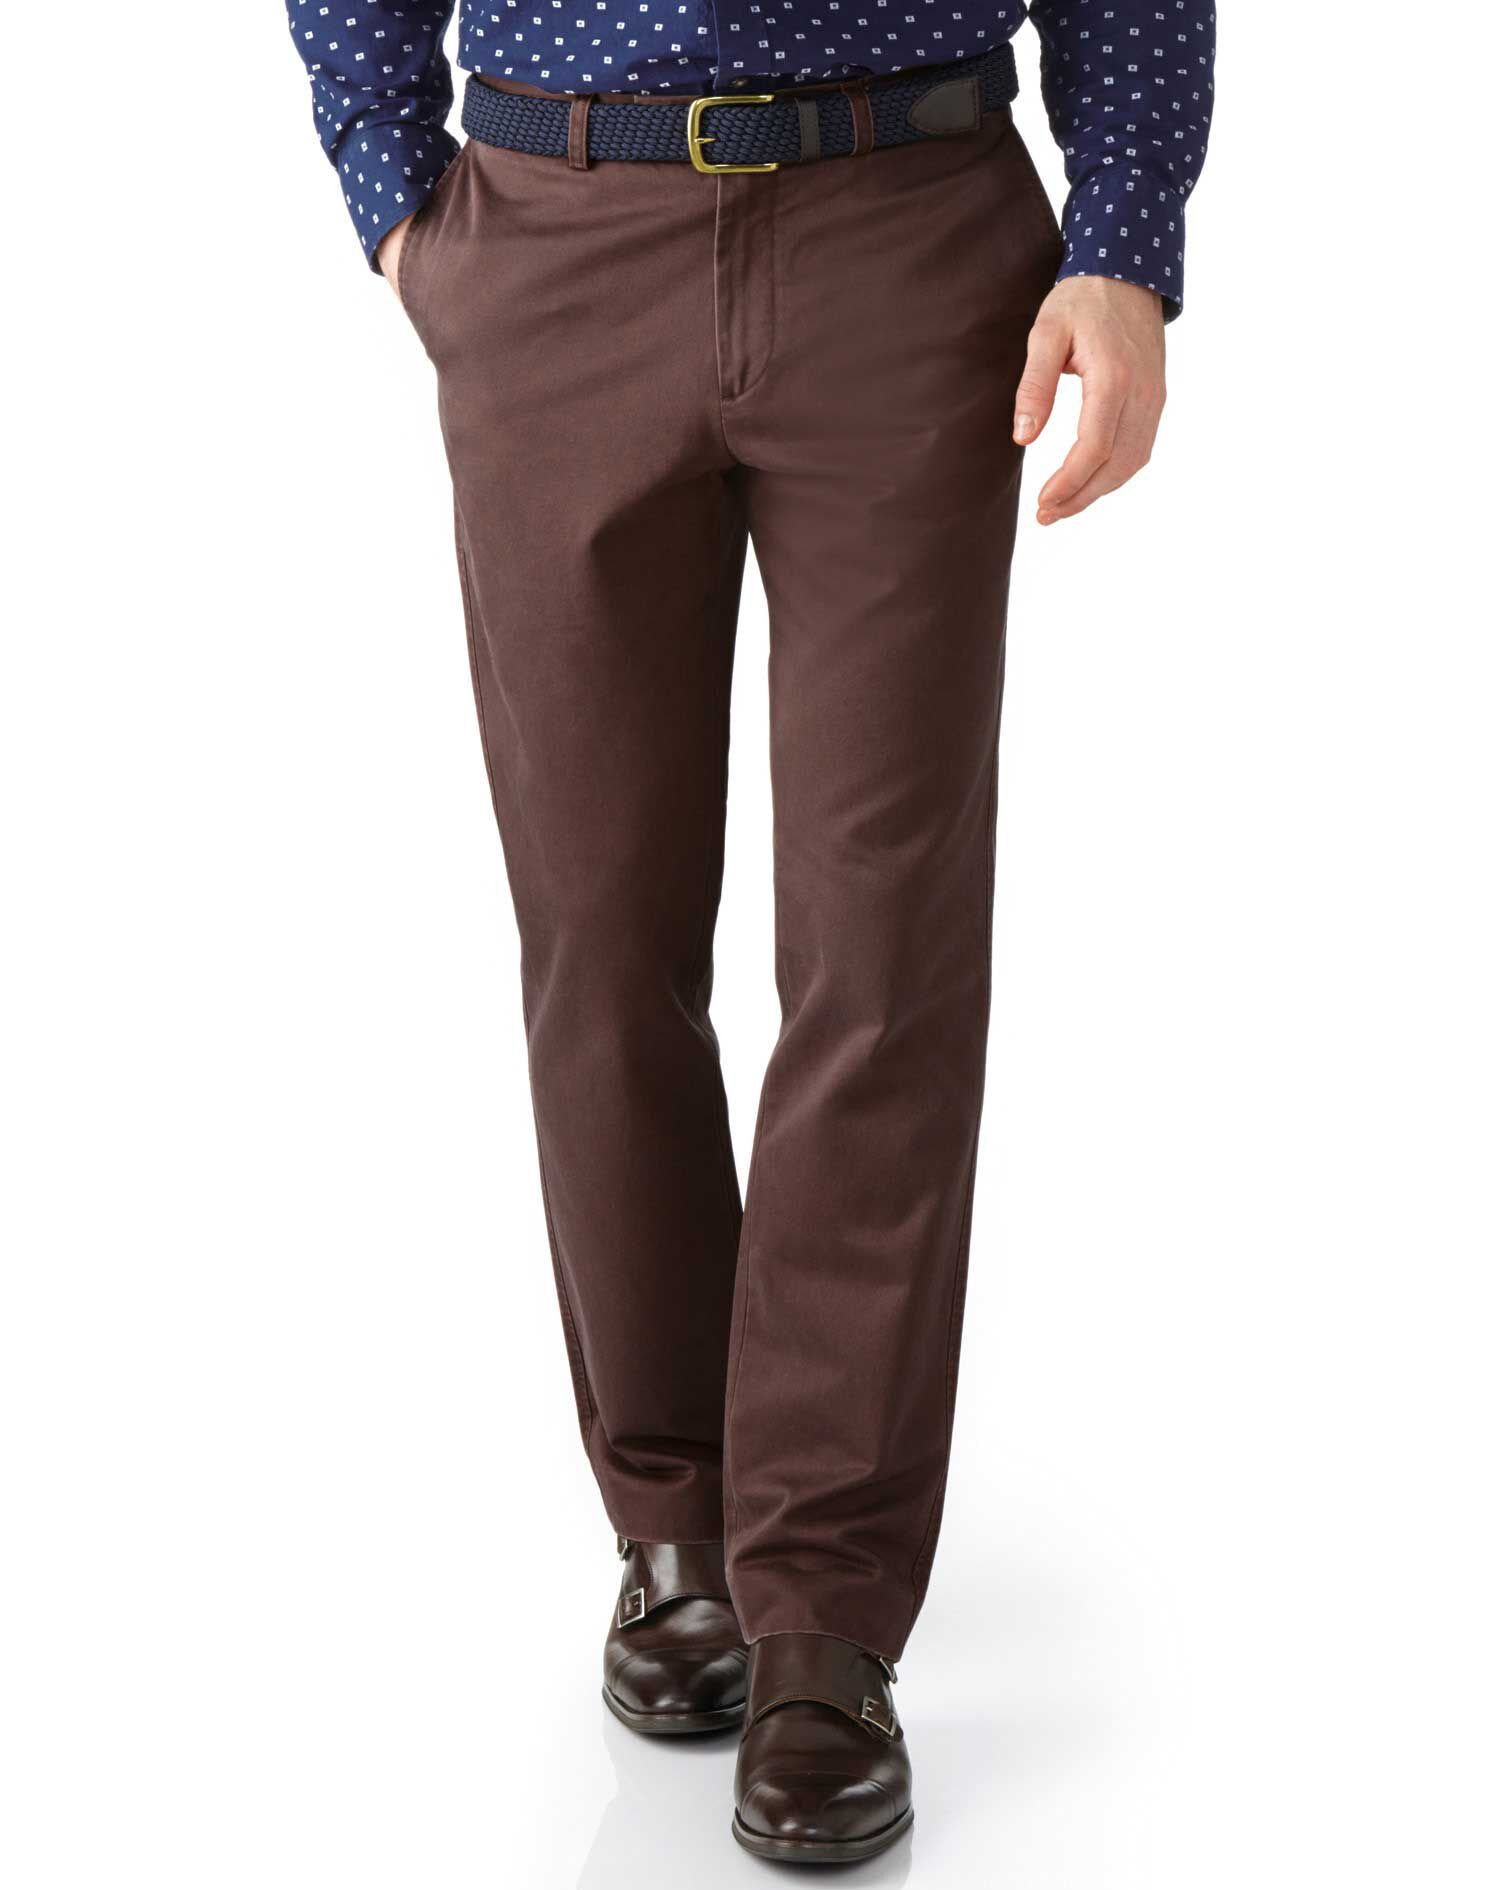 Brown Slim Fit Flat Front Cotton Chino Trousers Size W40 L34 by Charles Tyrwhitt